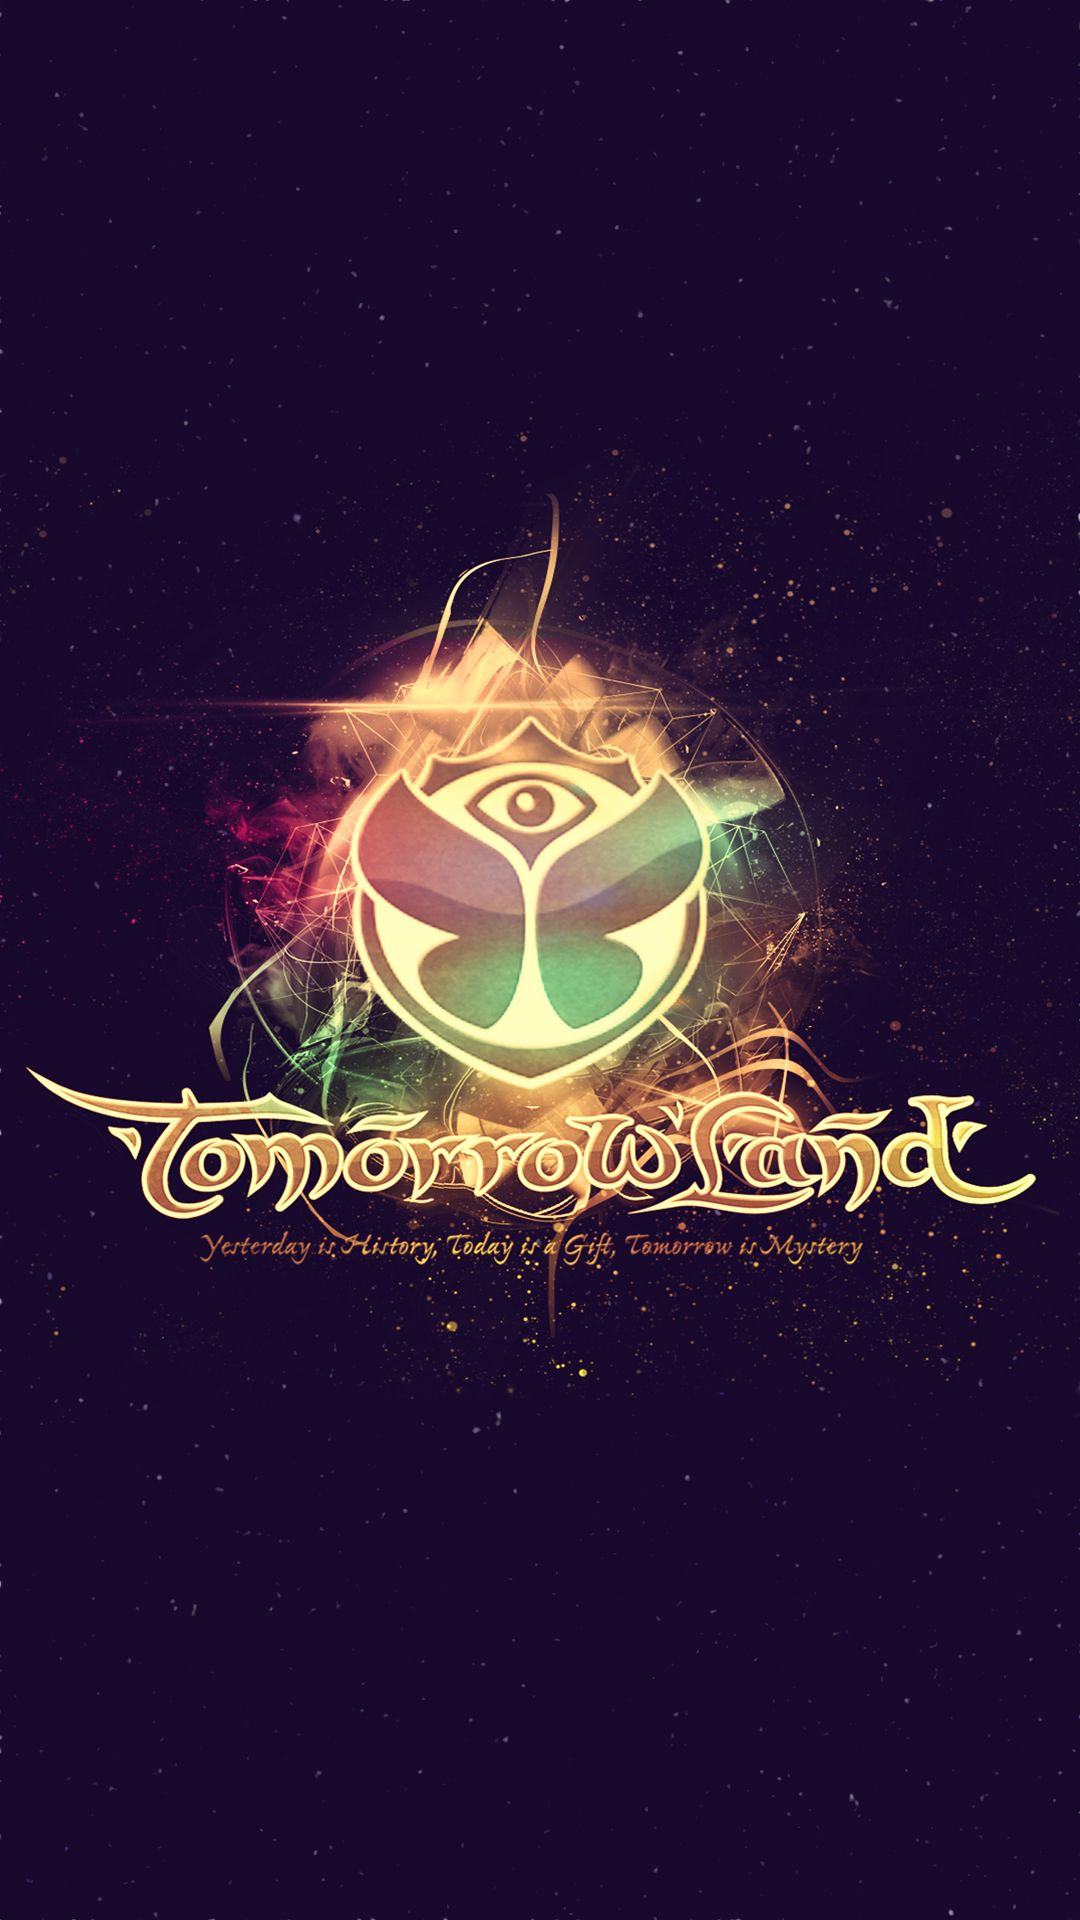 tomorrowland 2014 electronic music festival logo android wallpaper